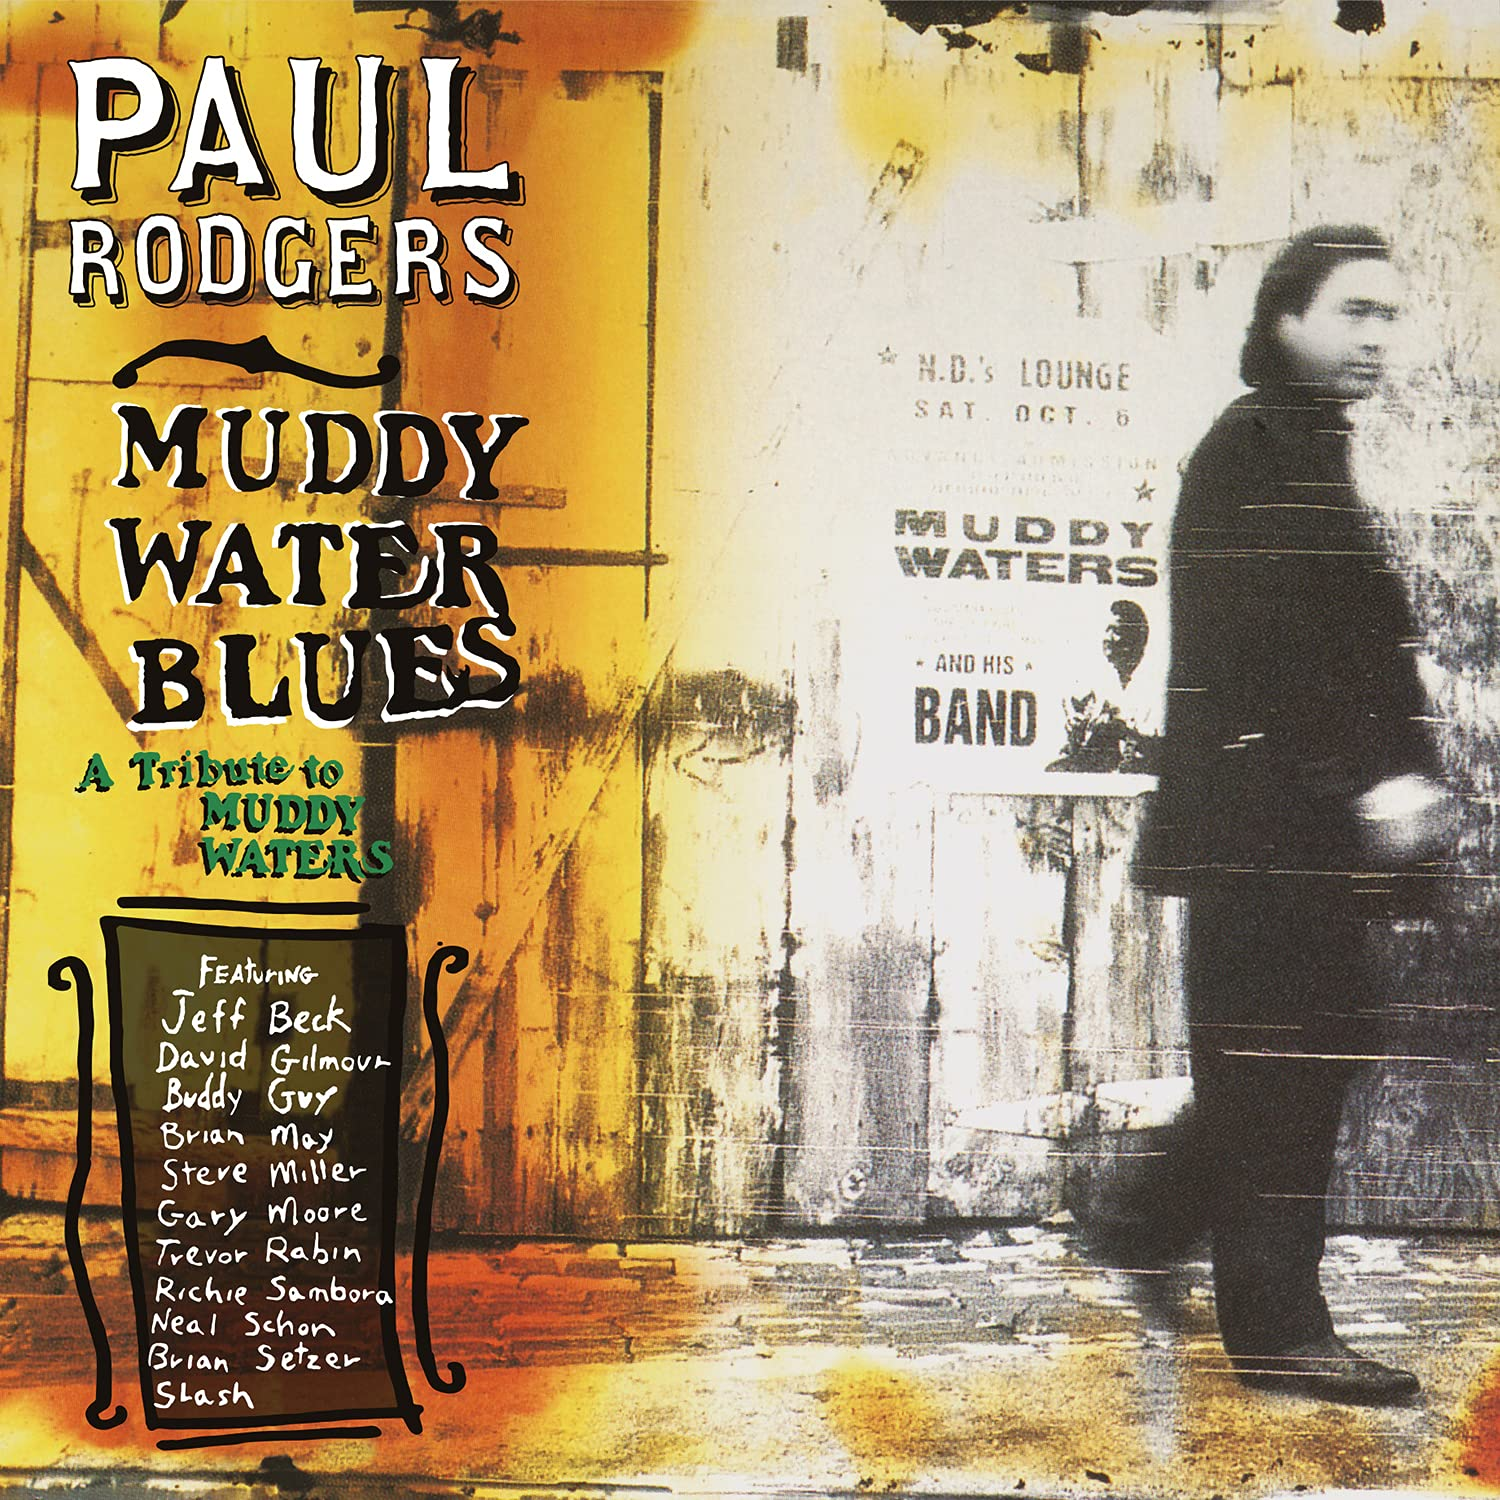 Muddy Water Blues, A Tribute To Muddy Waters (Vinyl) - Paul Rodgers